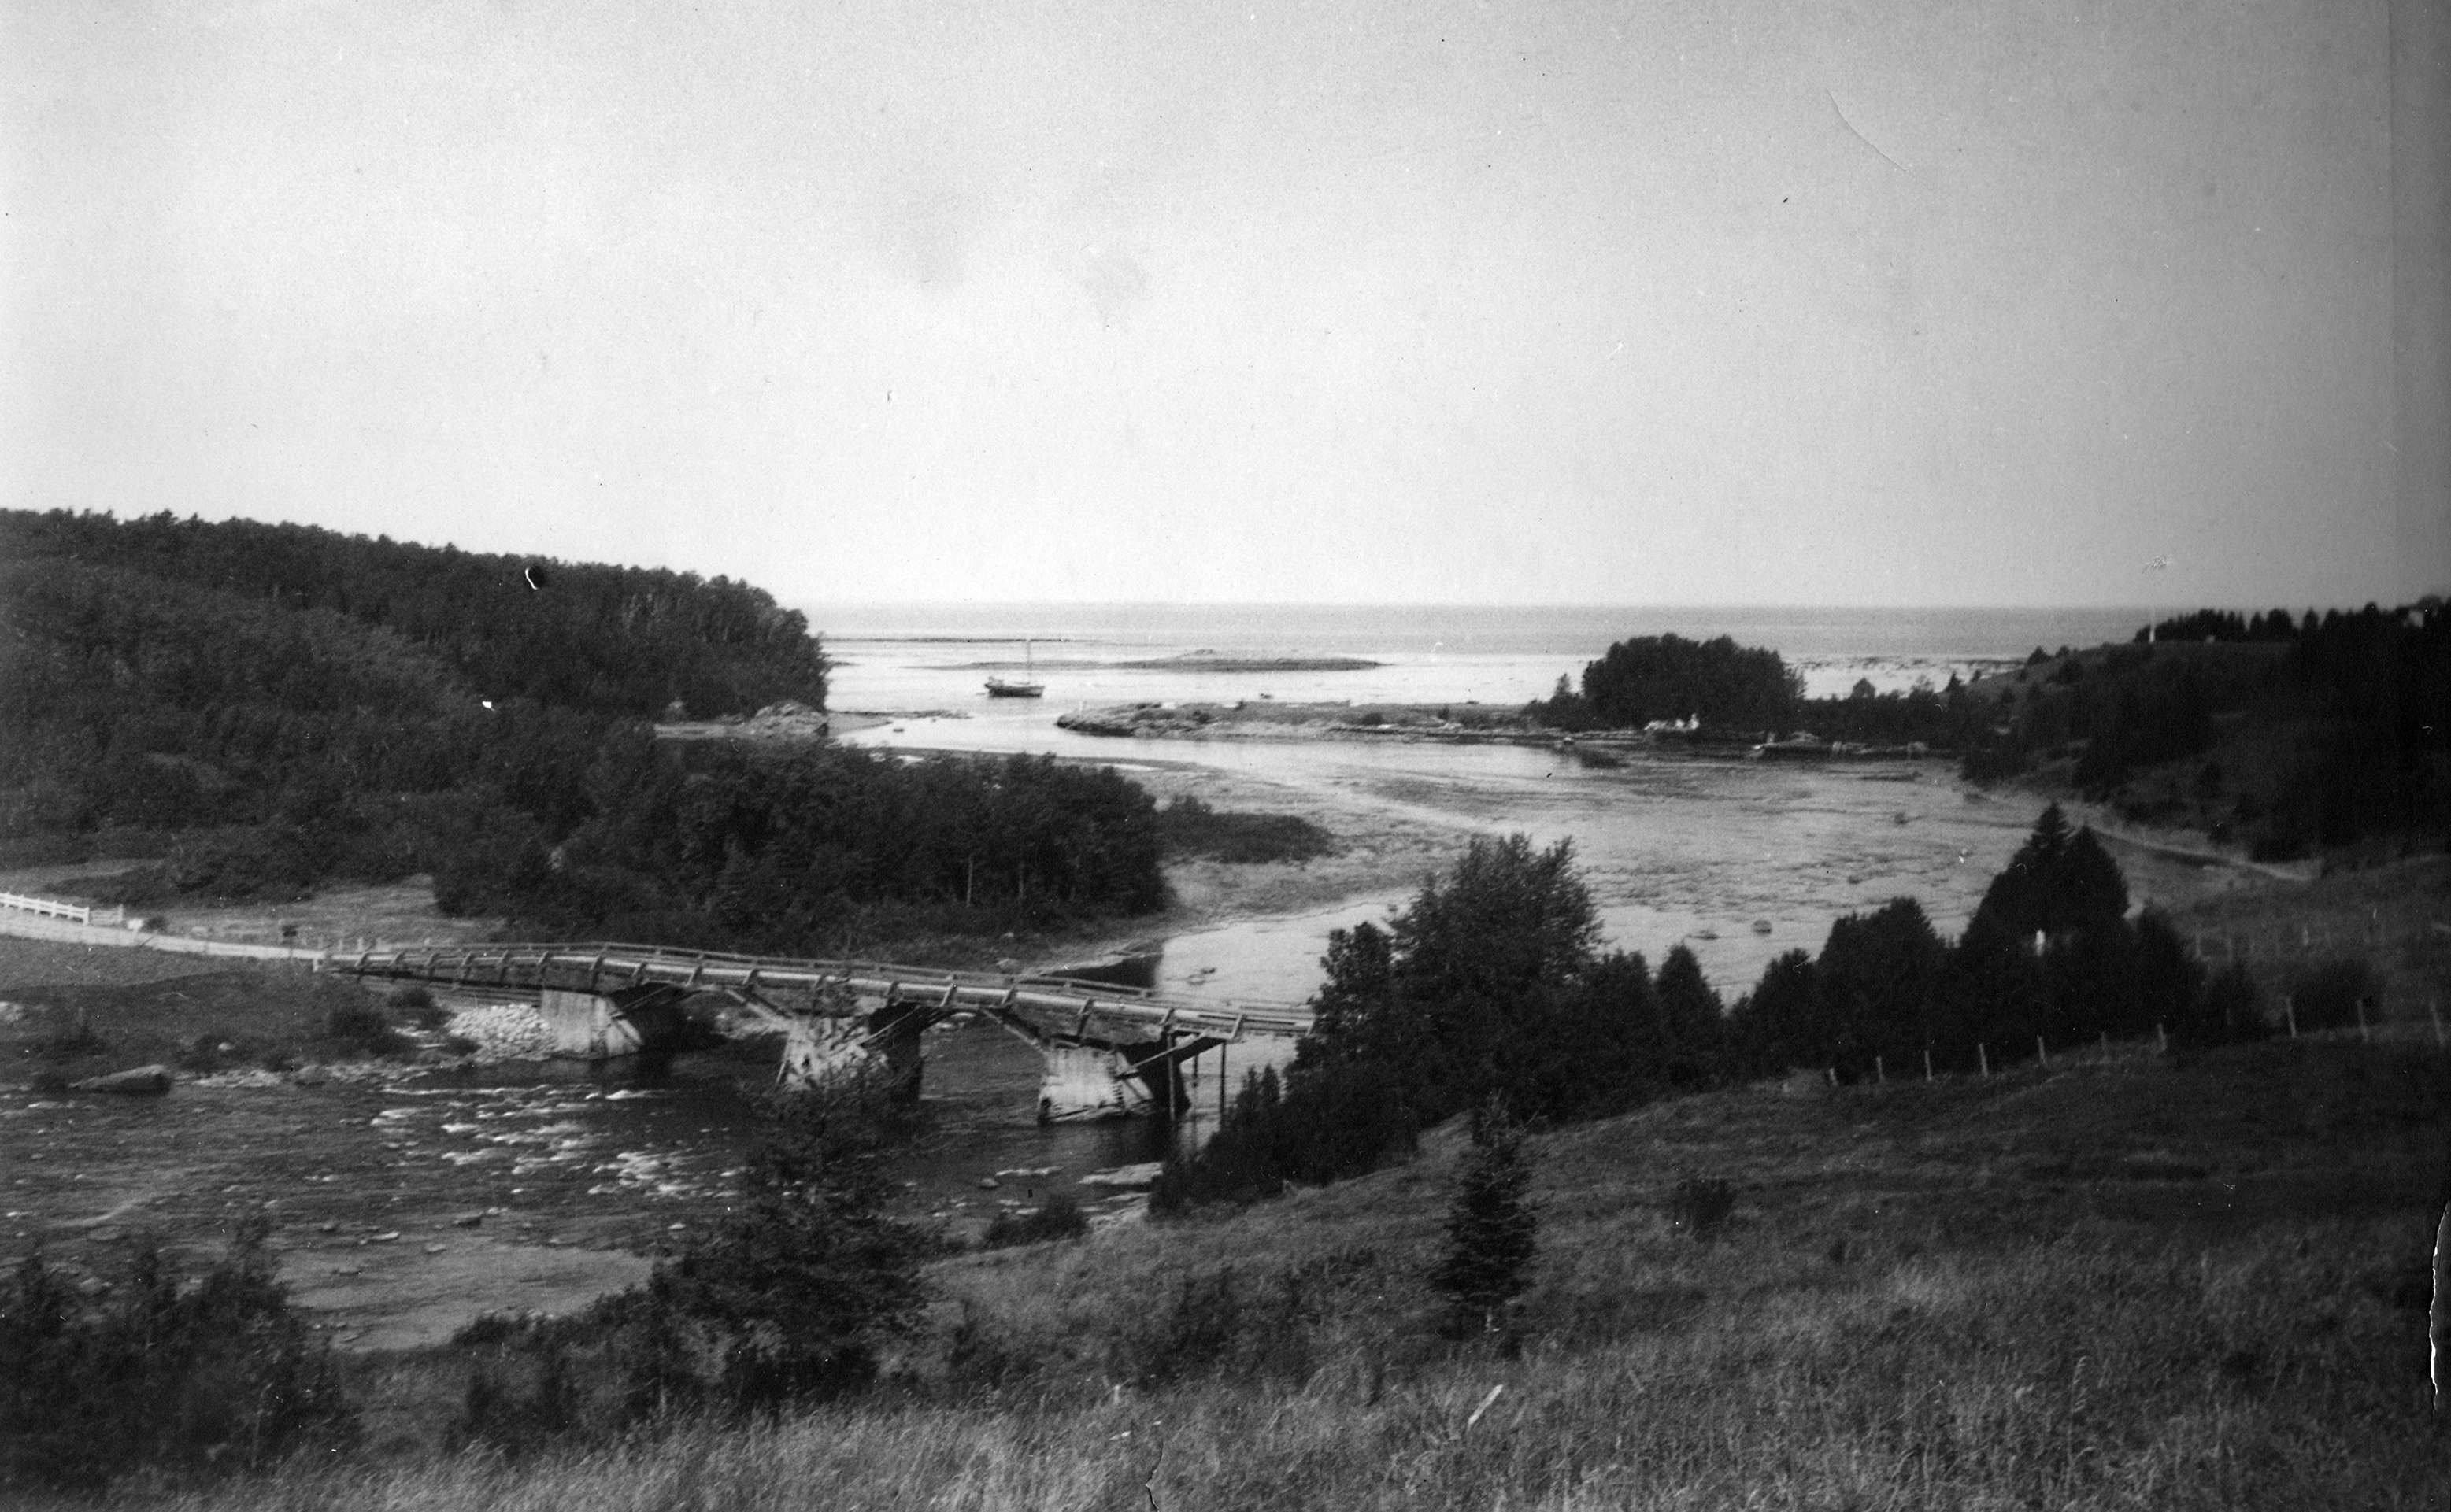 Photograph of the old wooden Bridge at Grand-Métis circa 1925. The bridge is located about 1 km from the mouth of the Metis River. Both sides of the river present a forest landscape and wharf. A schooner is moored at the mouth of the river and offers a glimpse of the expanse of the St. Lawrence River.